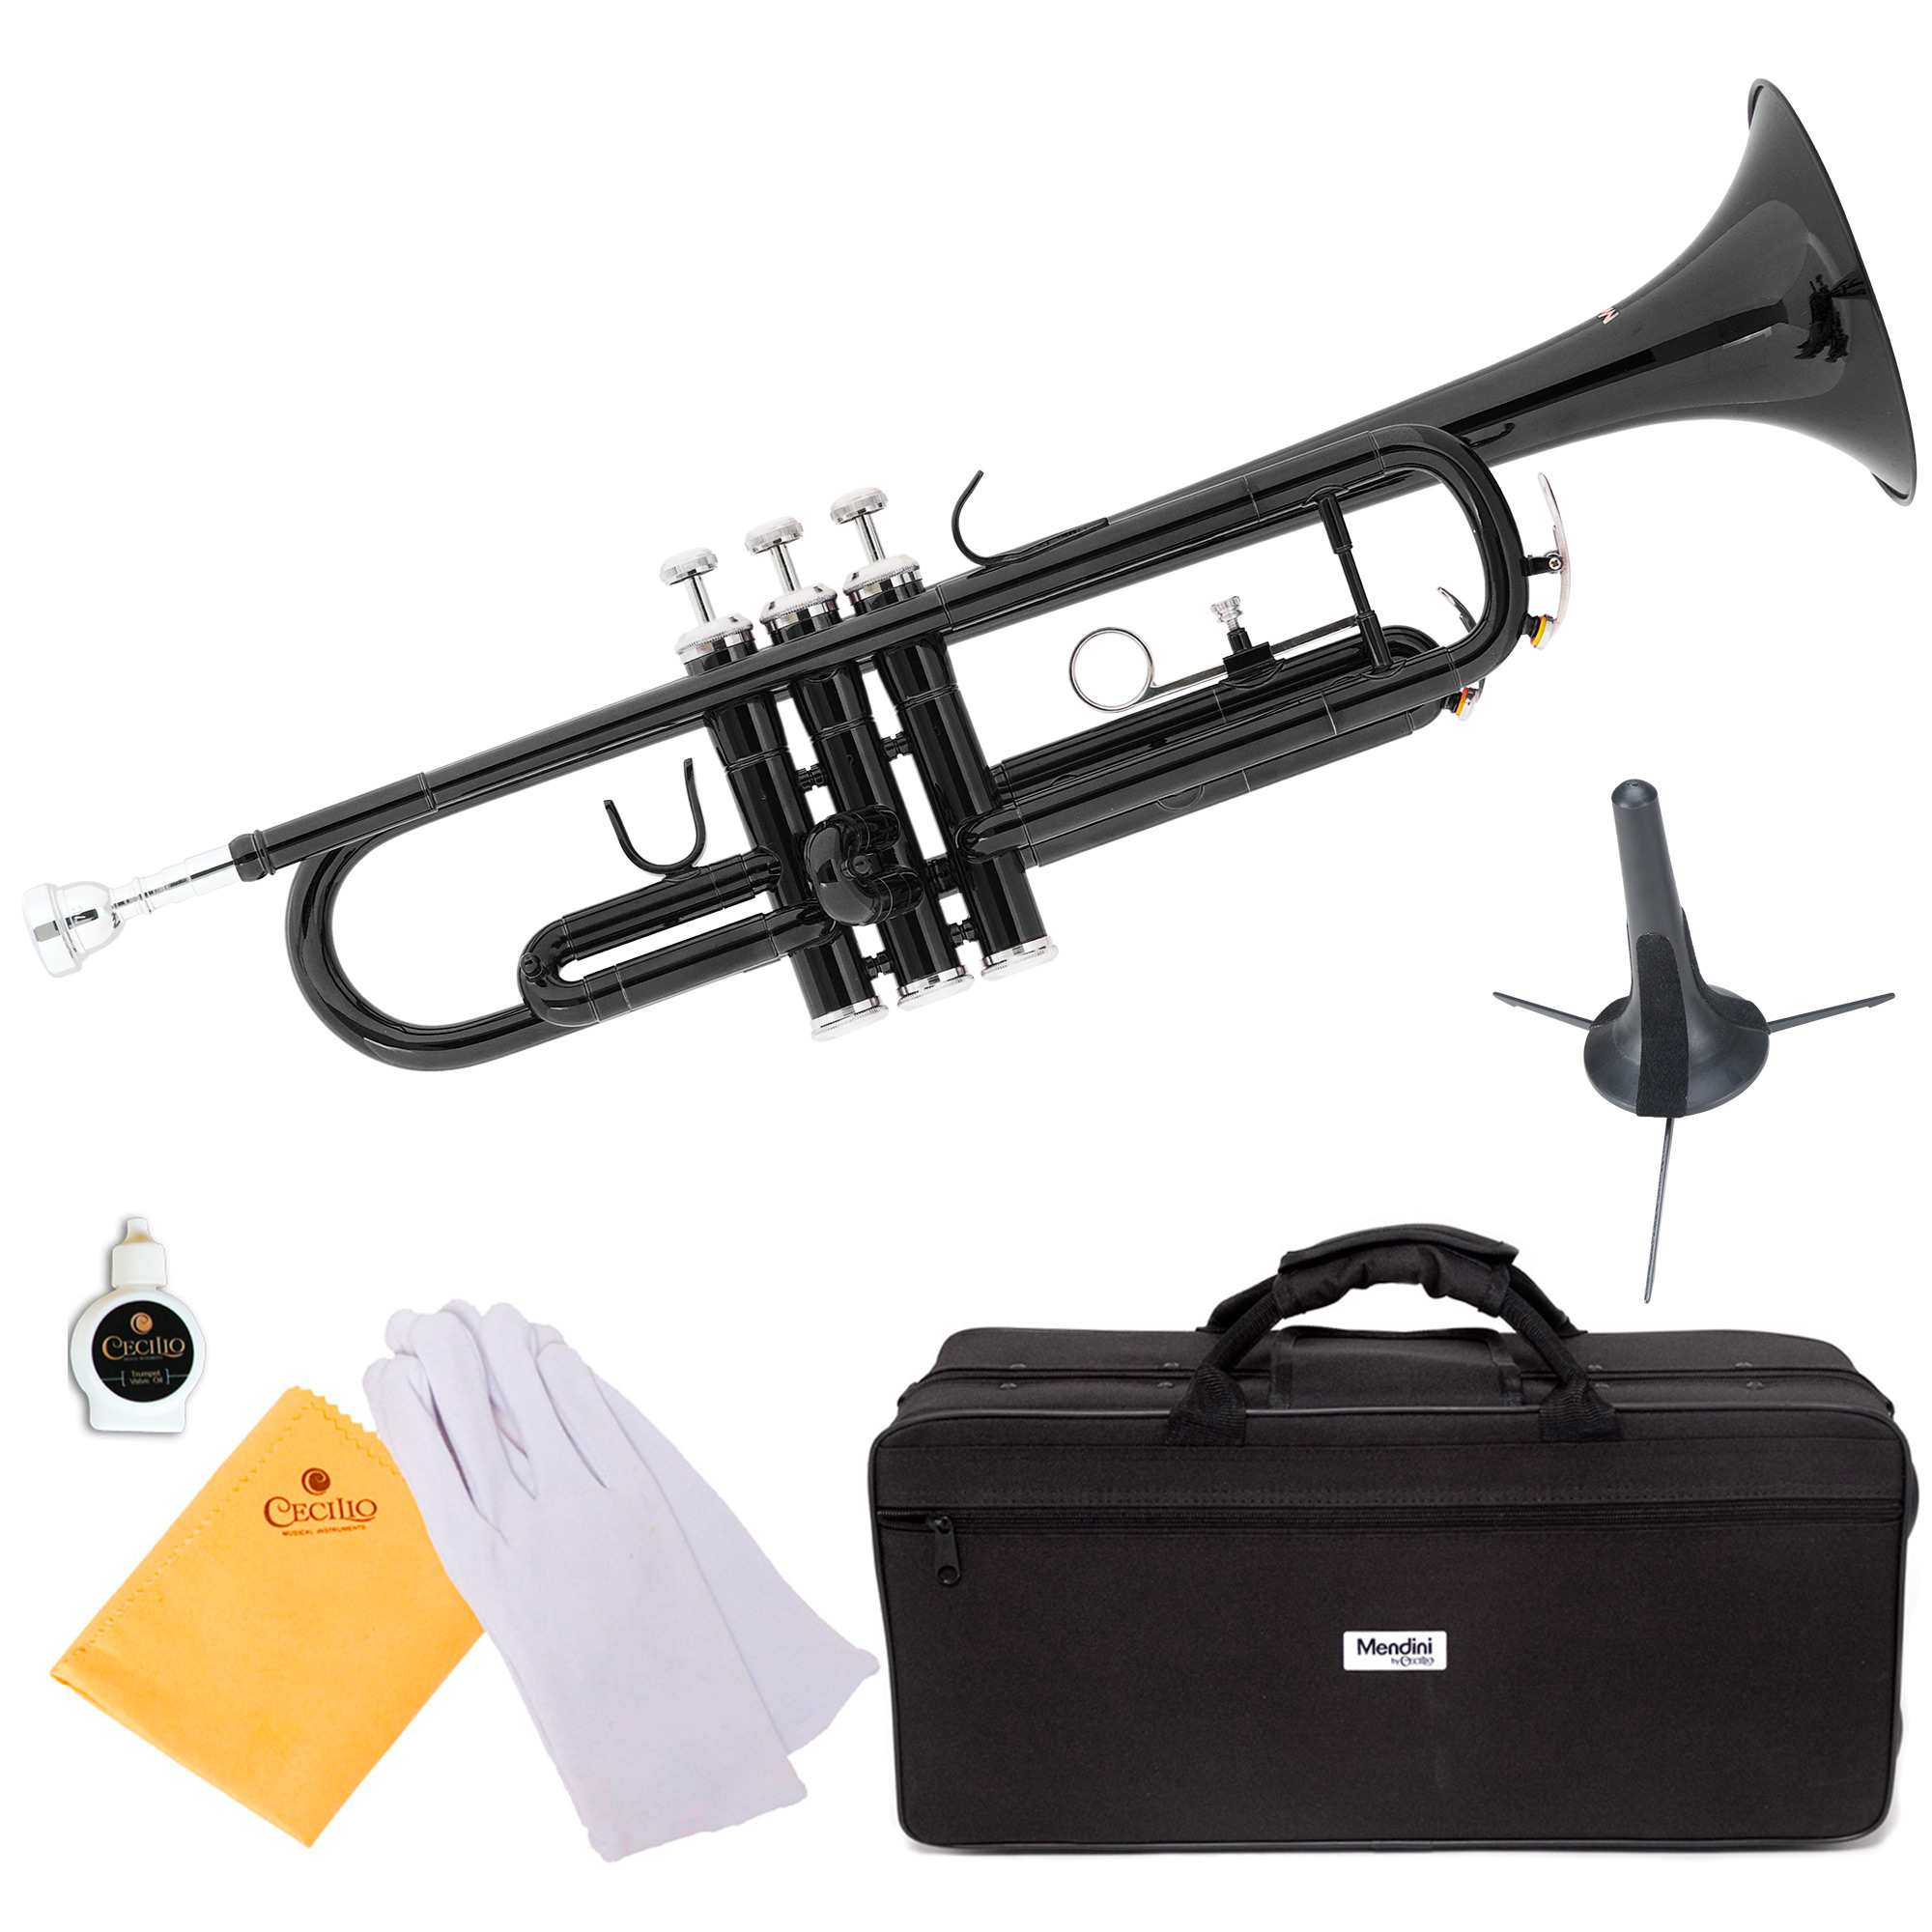 Mendini by Cecilio MTT-BK Black Lacquer Brass Bb Trumpet with Trumpet Stand and Durable Deluxe Case